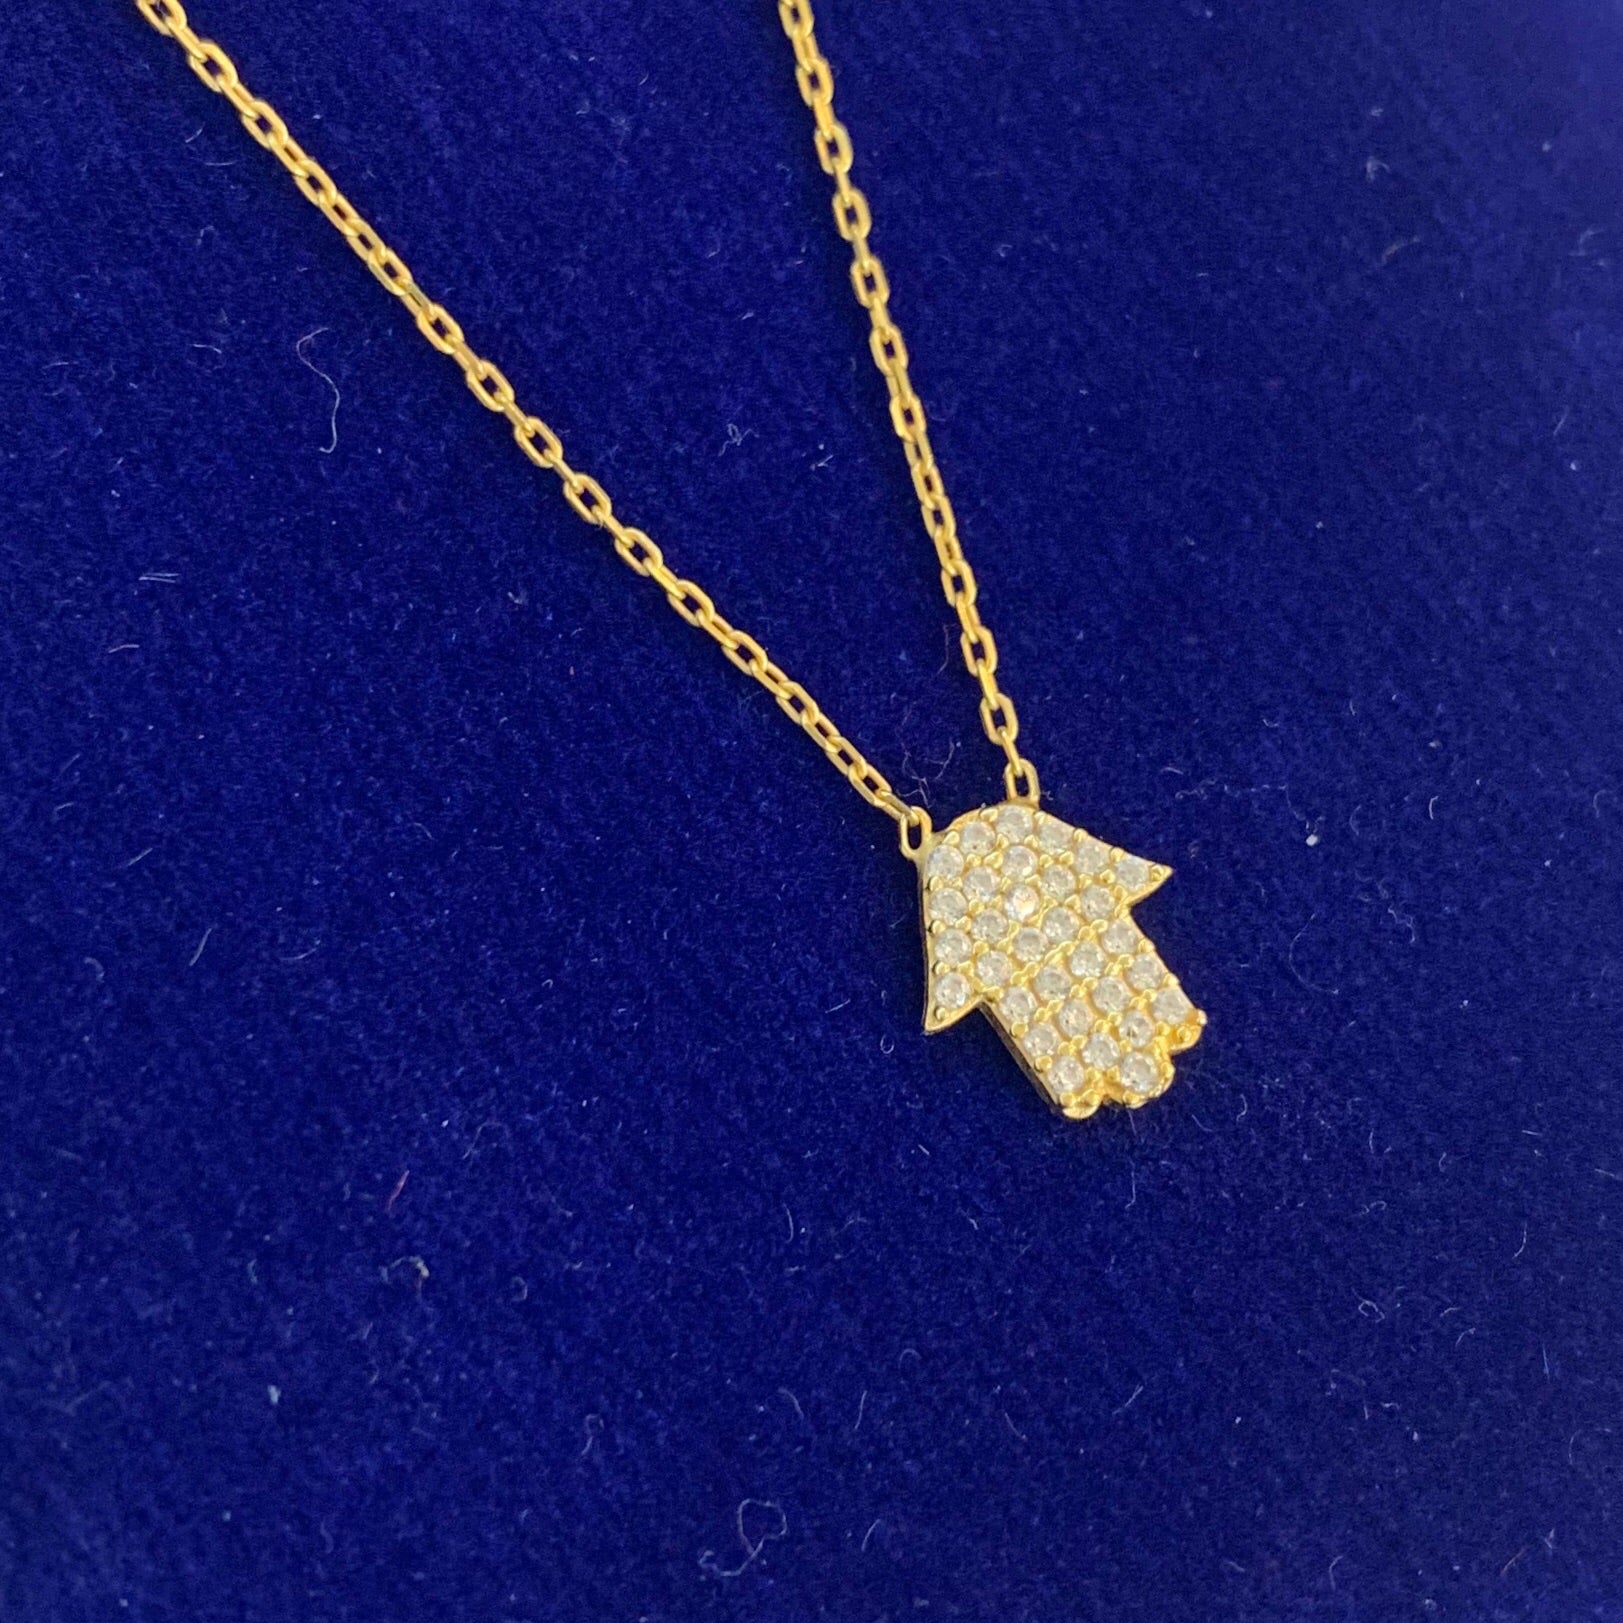 Handmade gold Hamsa pendant necklace